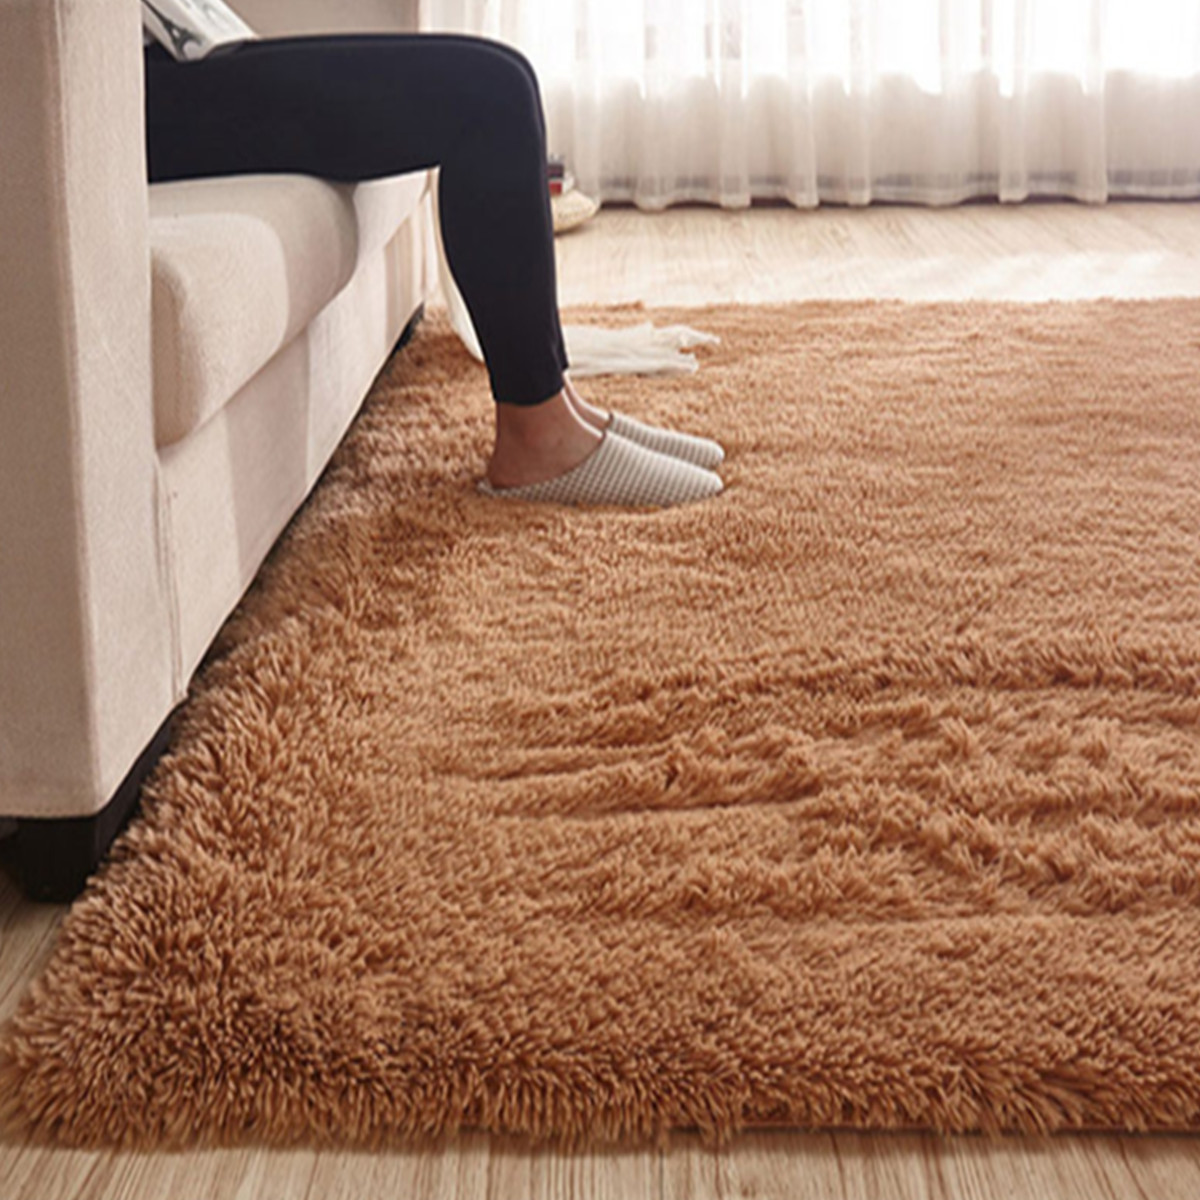 6 Colors Soft Floor Rug Solid Fluffy Shag Shaggy Area Rug